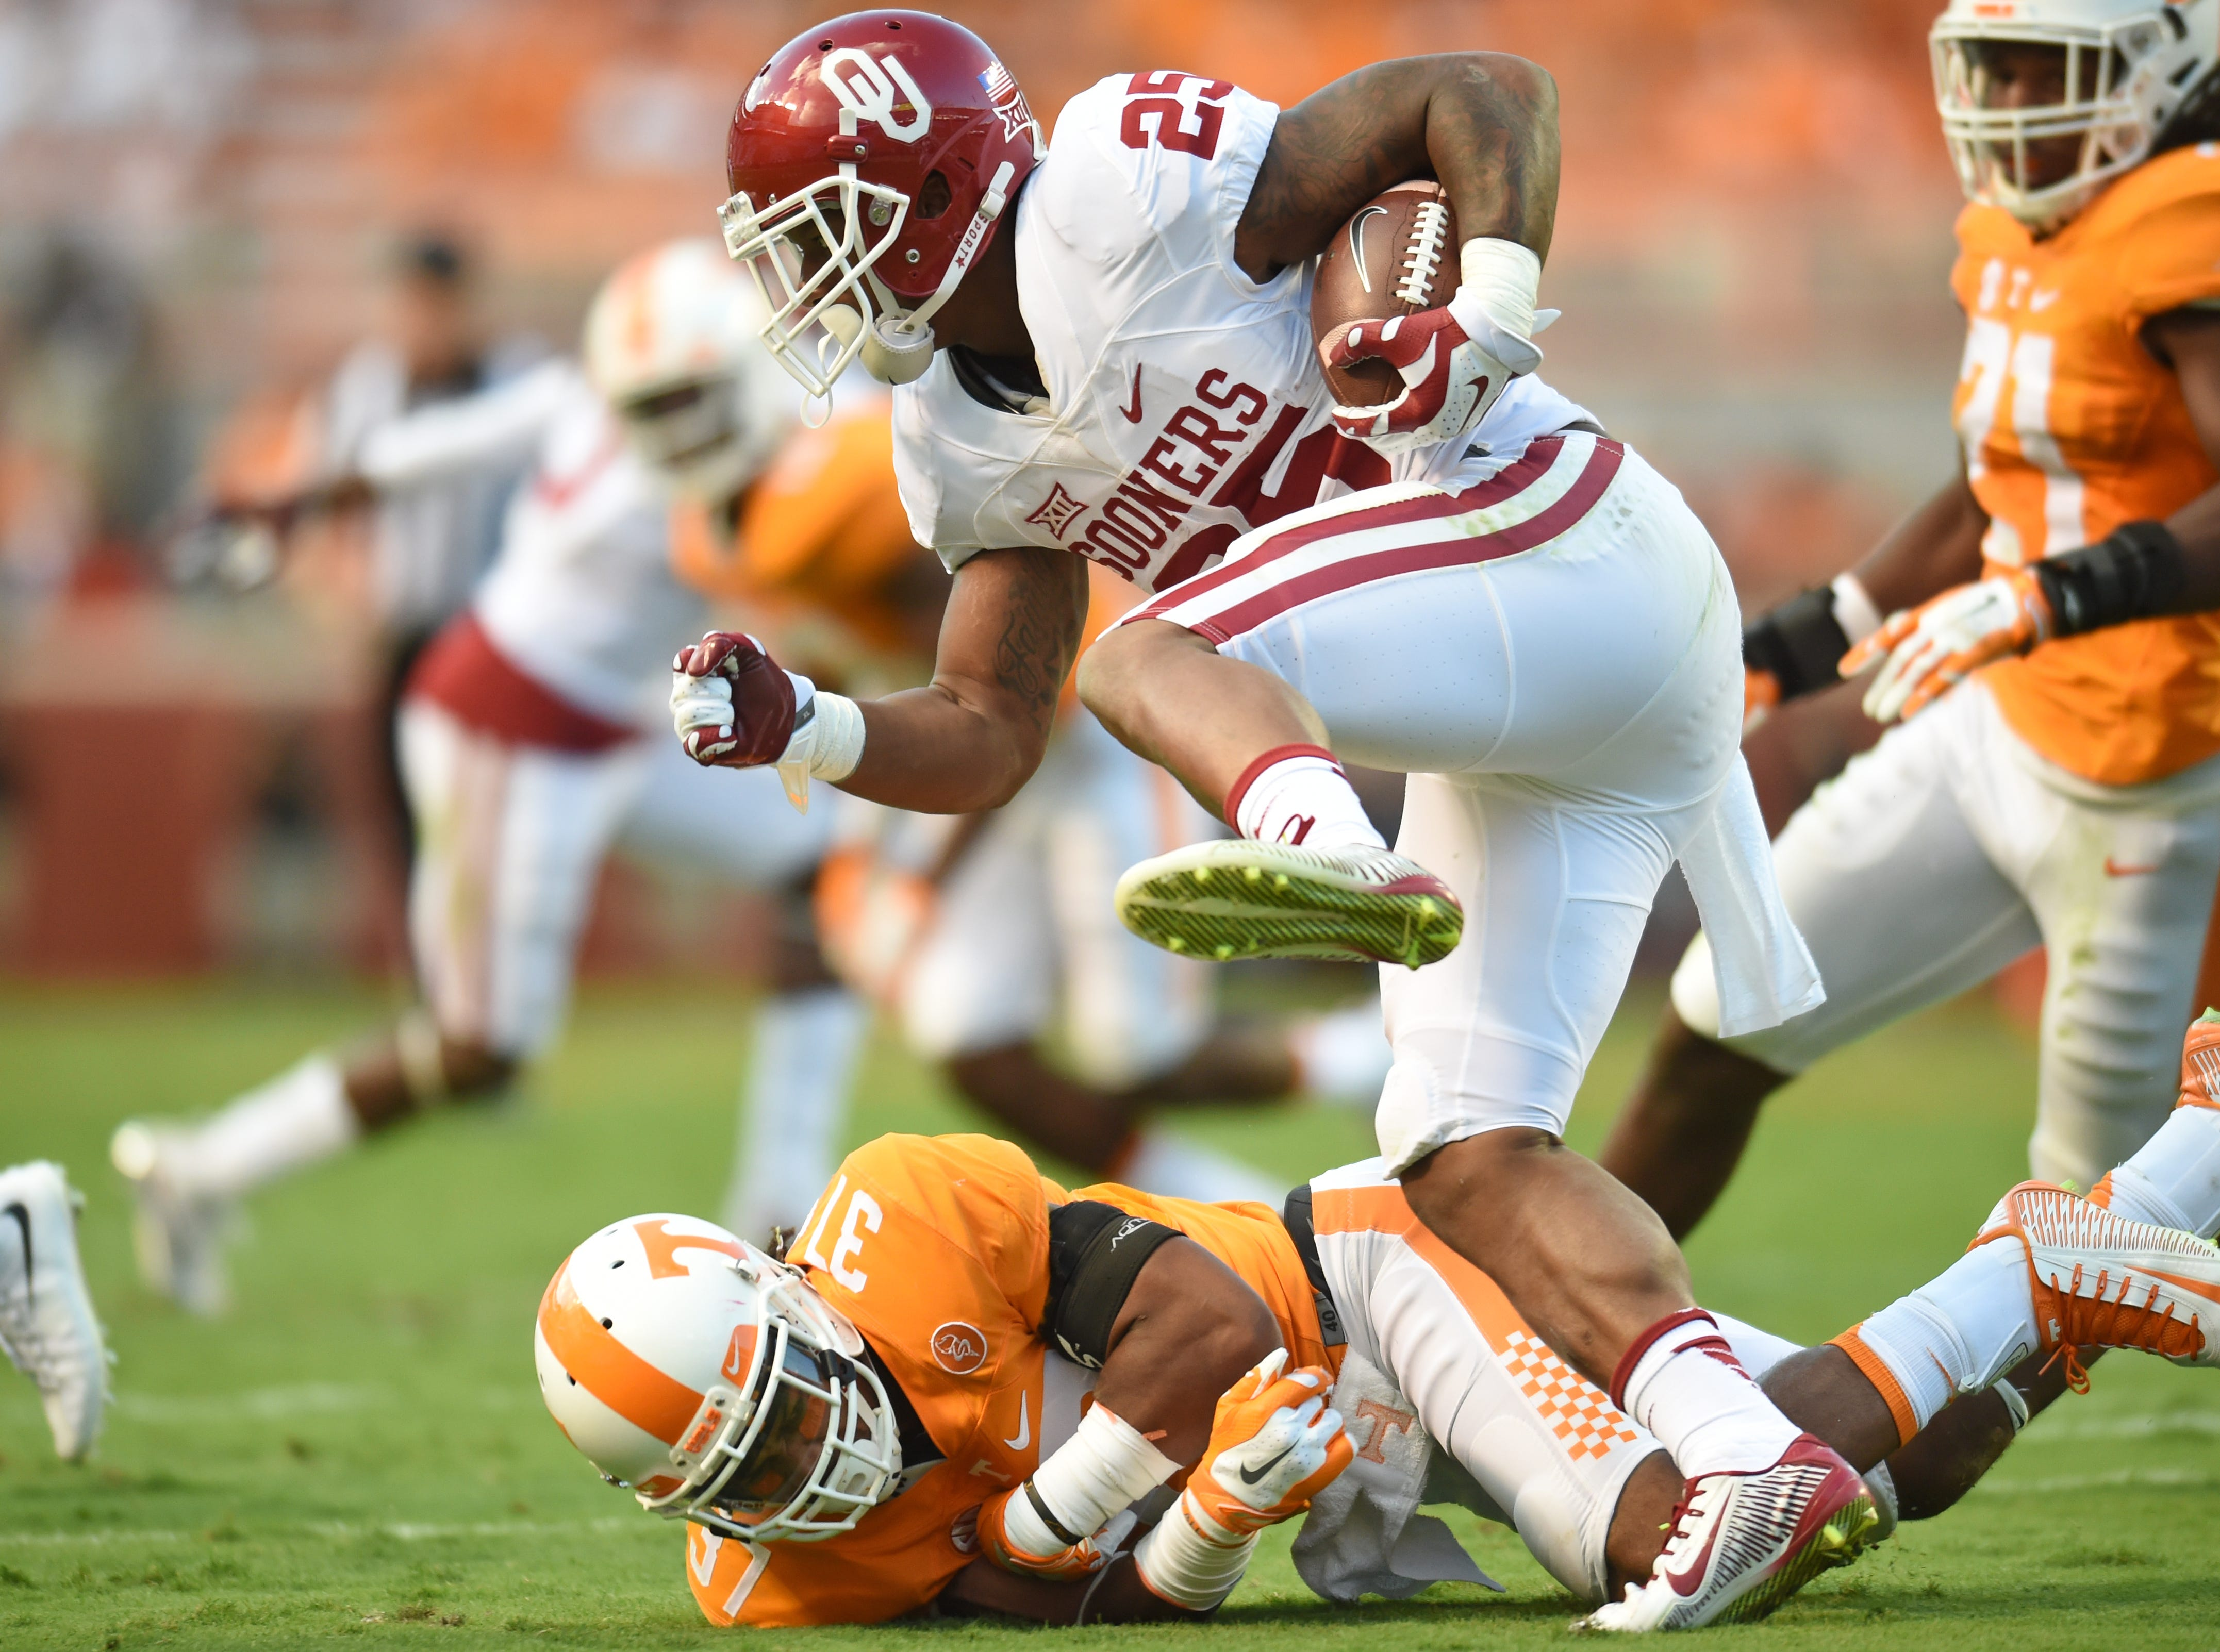 Oklahoma running back Joe Mixon (25) steps over an attempted tackle by Tennessee defensive back Brian Randolph (37) during the first half at Neyland Stadium on Saturday, Sept. 12, 2015 in Knoxville, Tenn.